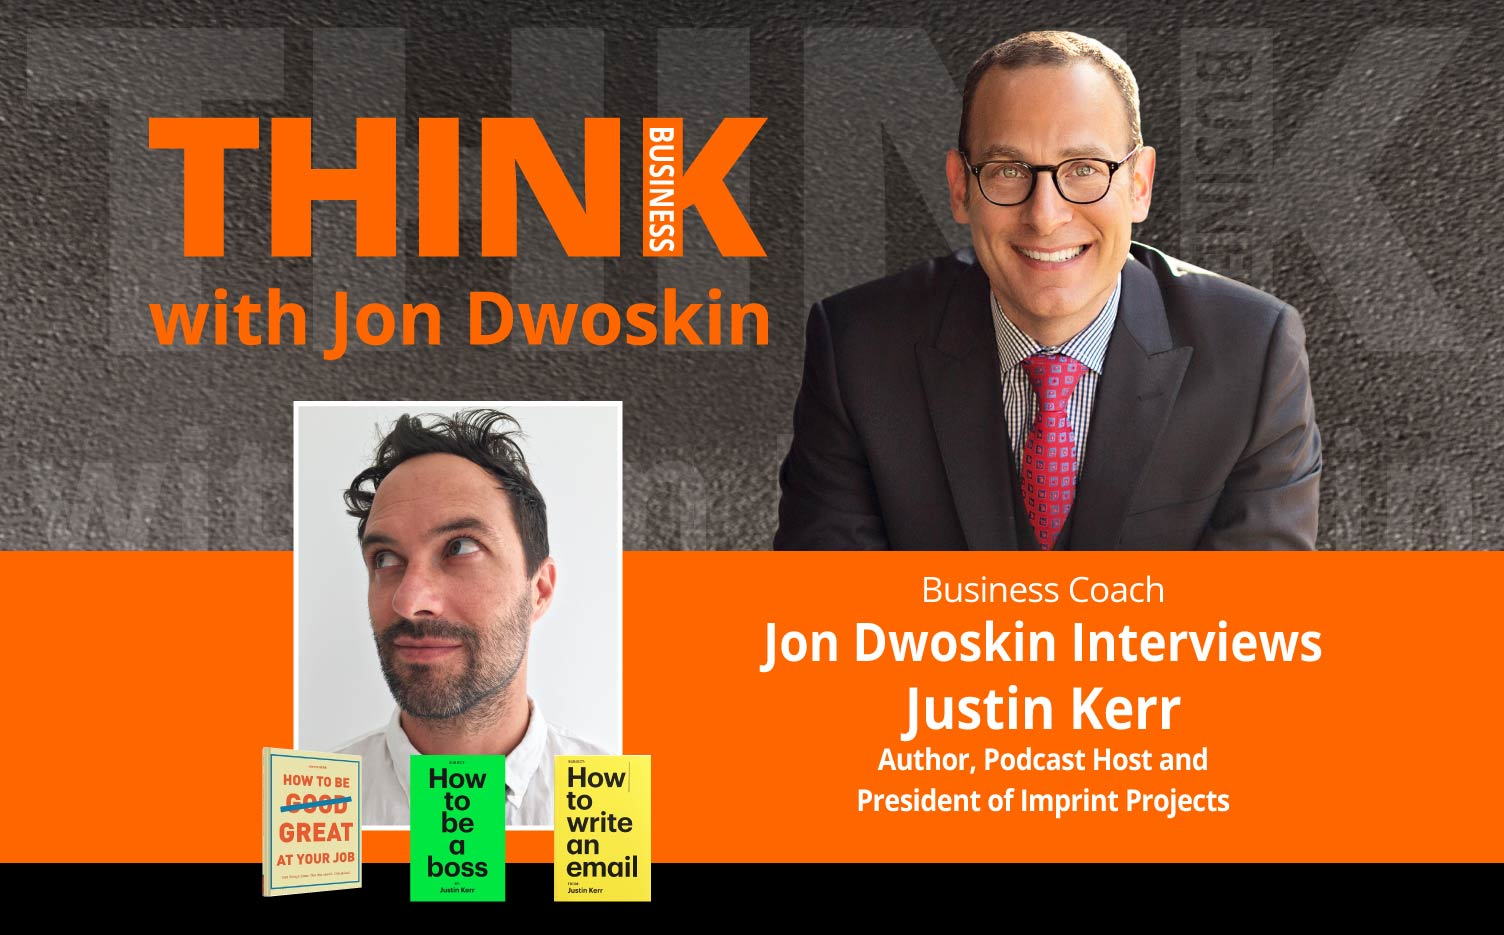 THINK Business Podcast: Jon Dwoskin Interviews Justin Kerr, Author, Podcast Host and President of Imprint Projects